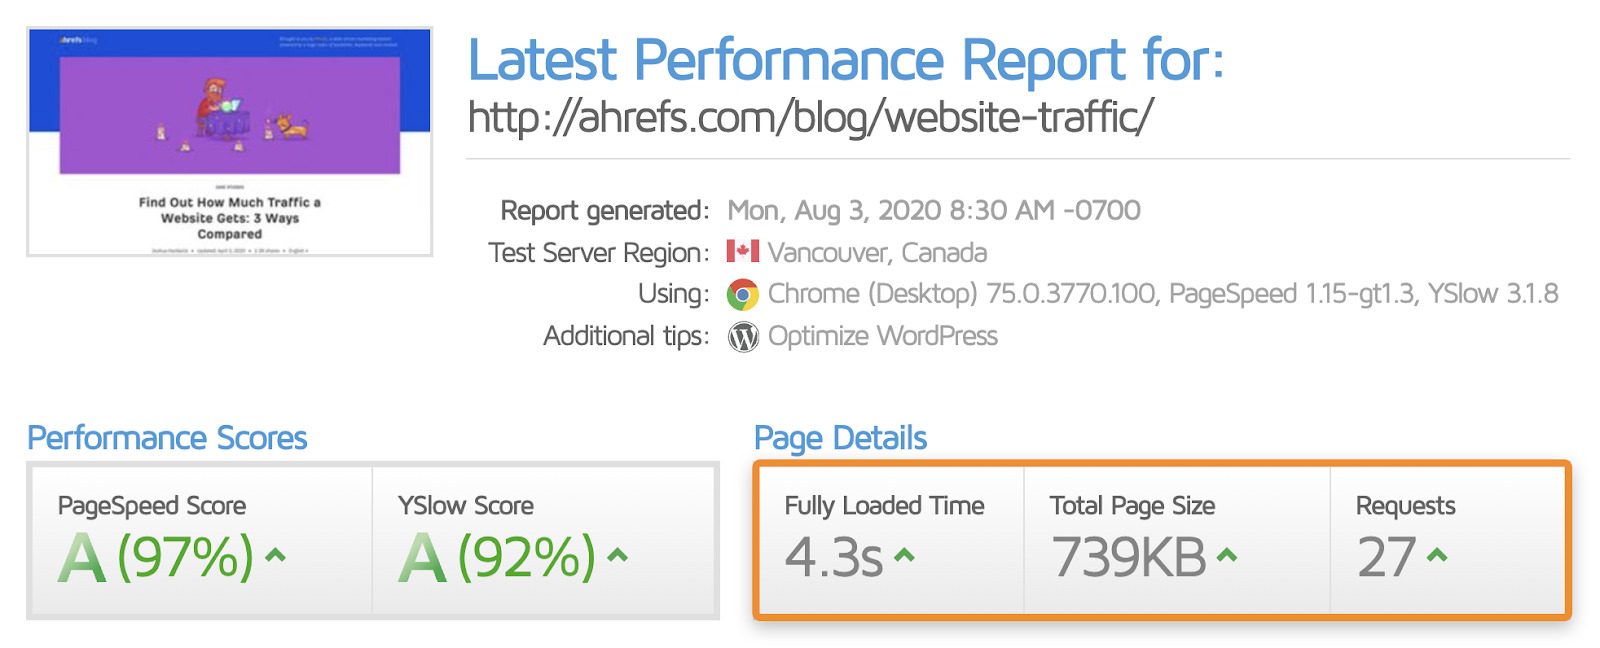 14 pagespeed